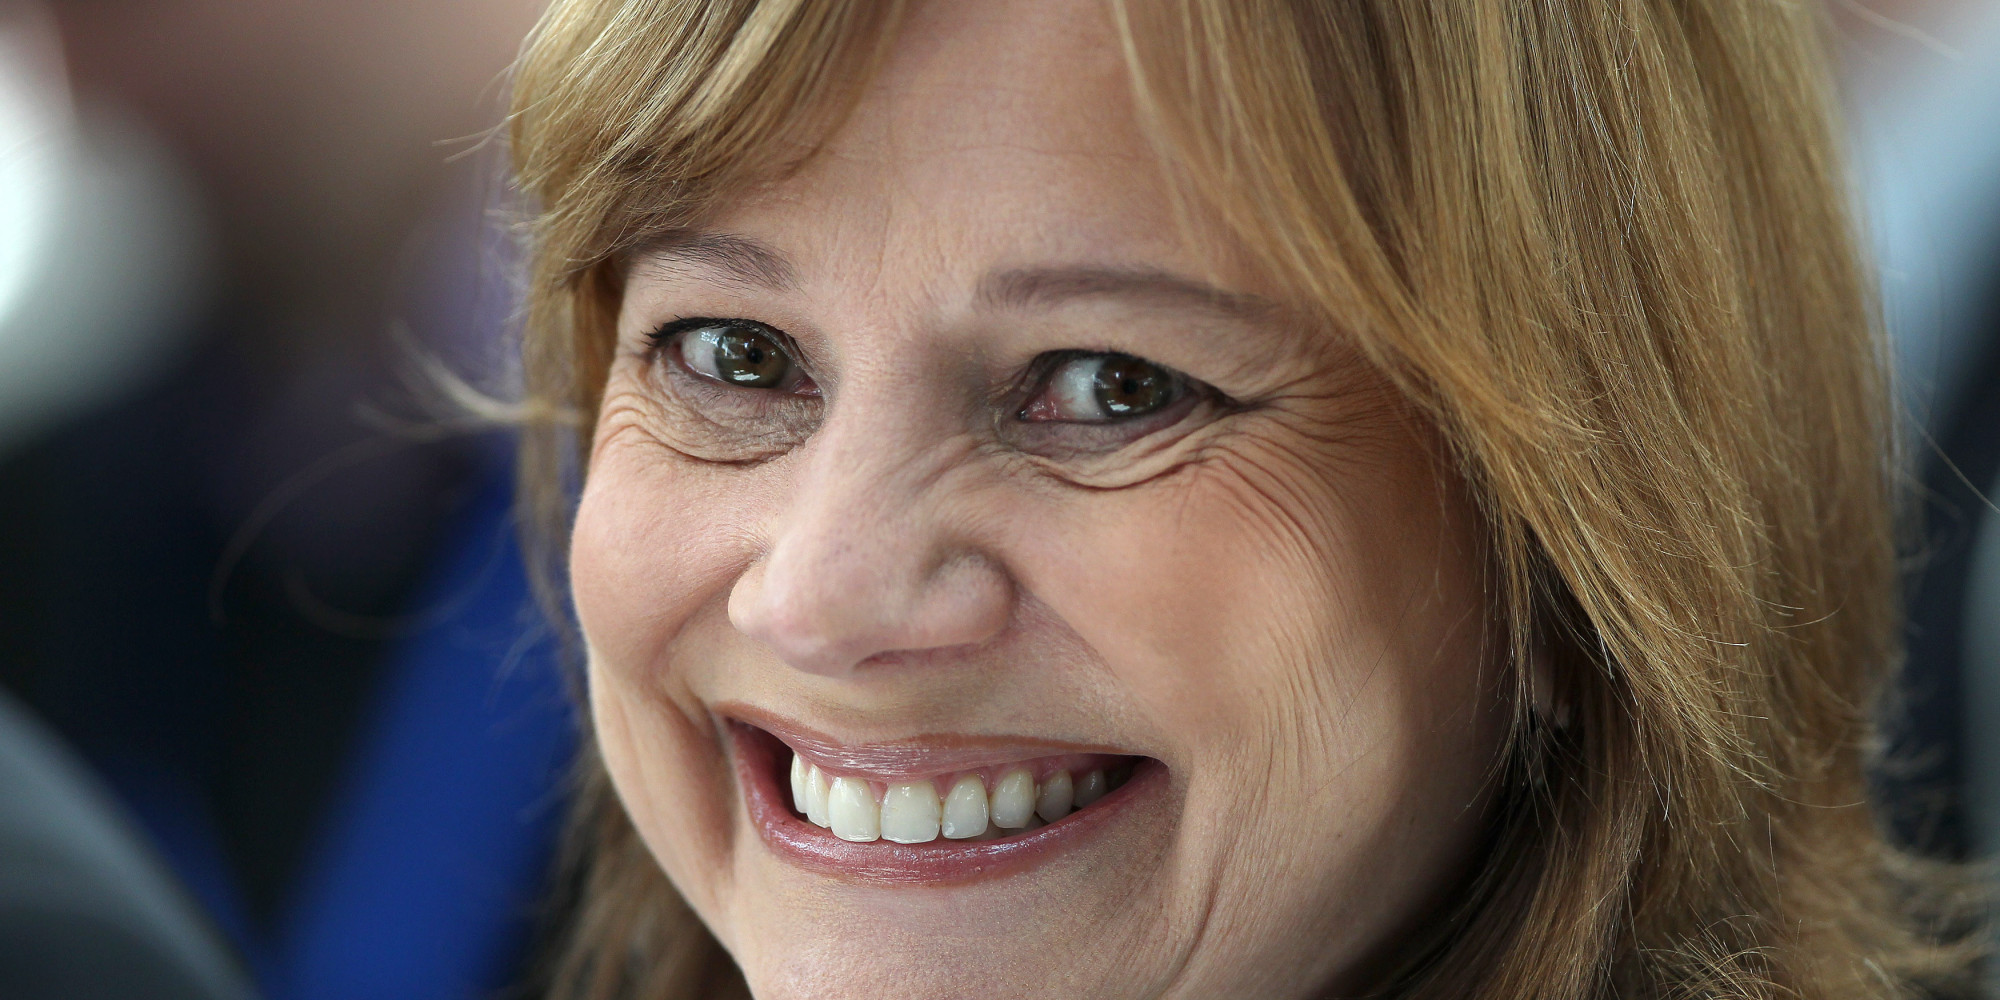 Mary Barra, new CEO of US carmaker General Motors GM arrives for a news conference at the headquarters of the company's German subsidiary Opel in Ruesselsheim, on January 27, 2014. AFP PHOTO / DANIEL ROLAND (Photo credit should read DANIEL ROLAND/AFP/Getty Images)